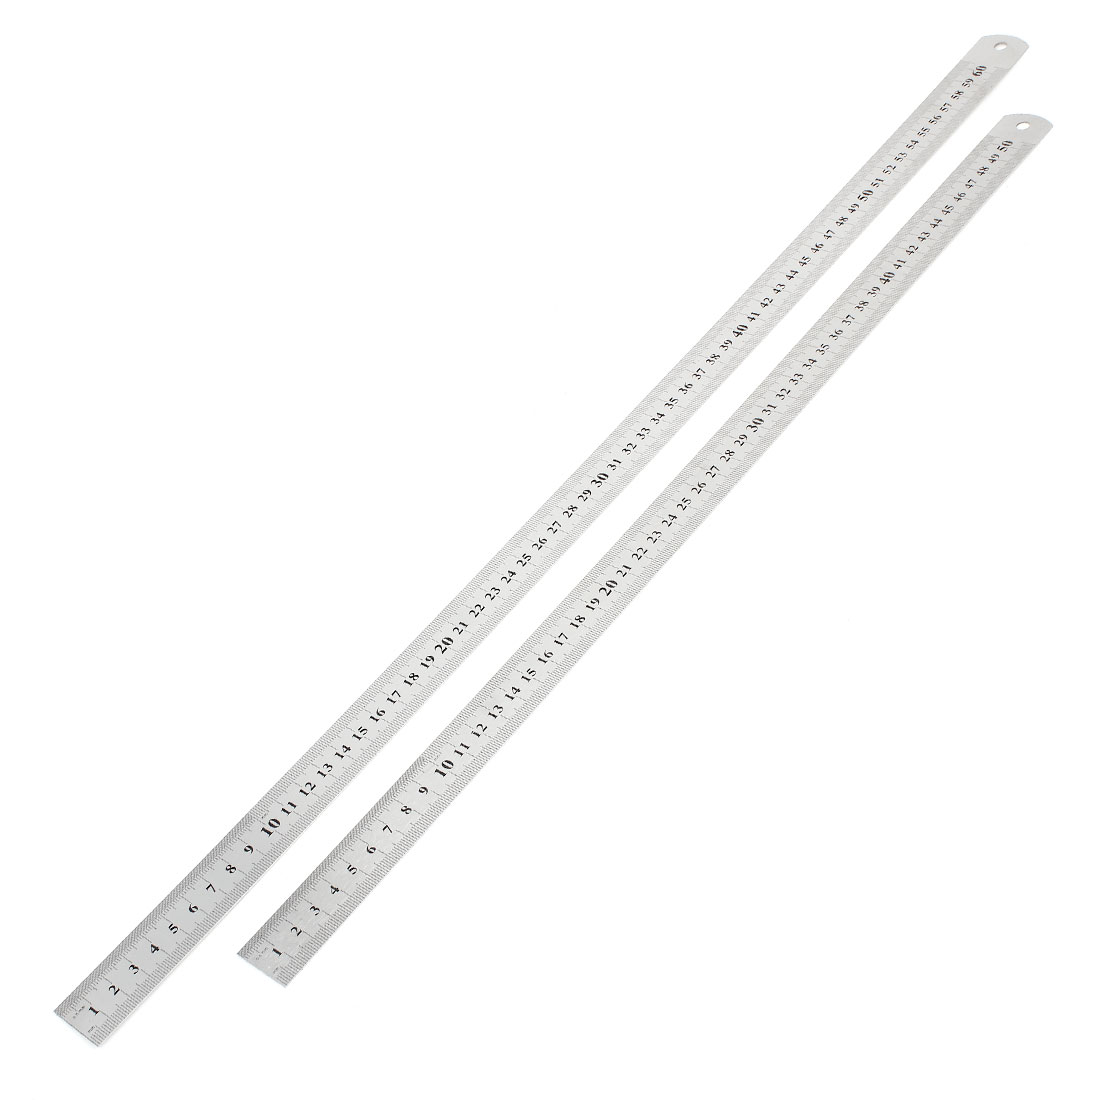 2 in 1 50cm 60cm Double Sides Students Metric Straight Ruler Silver Tone